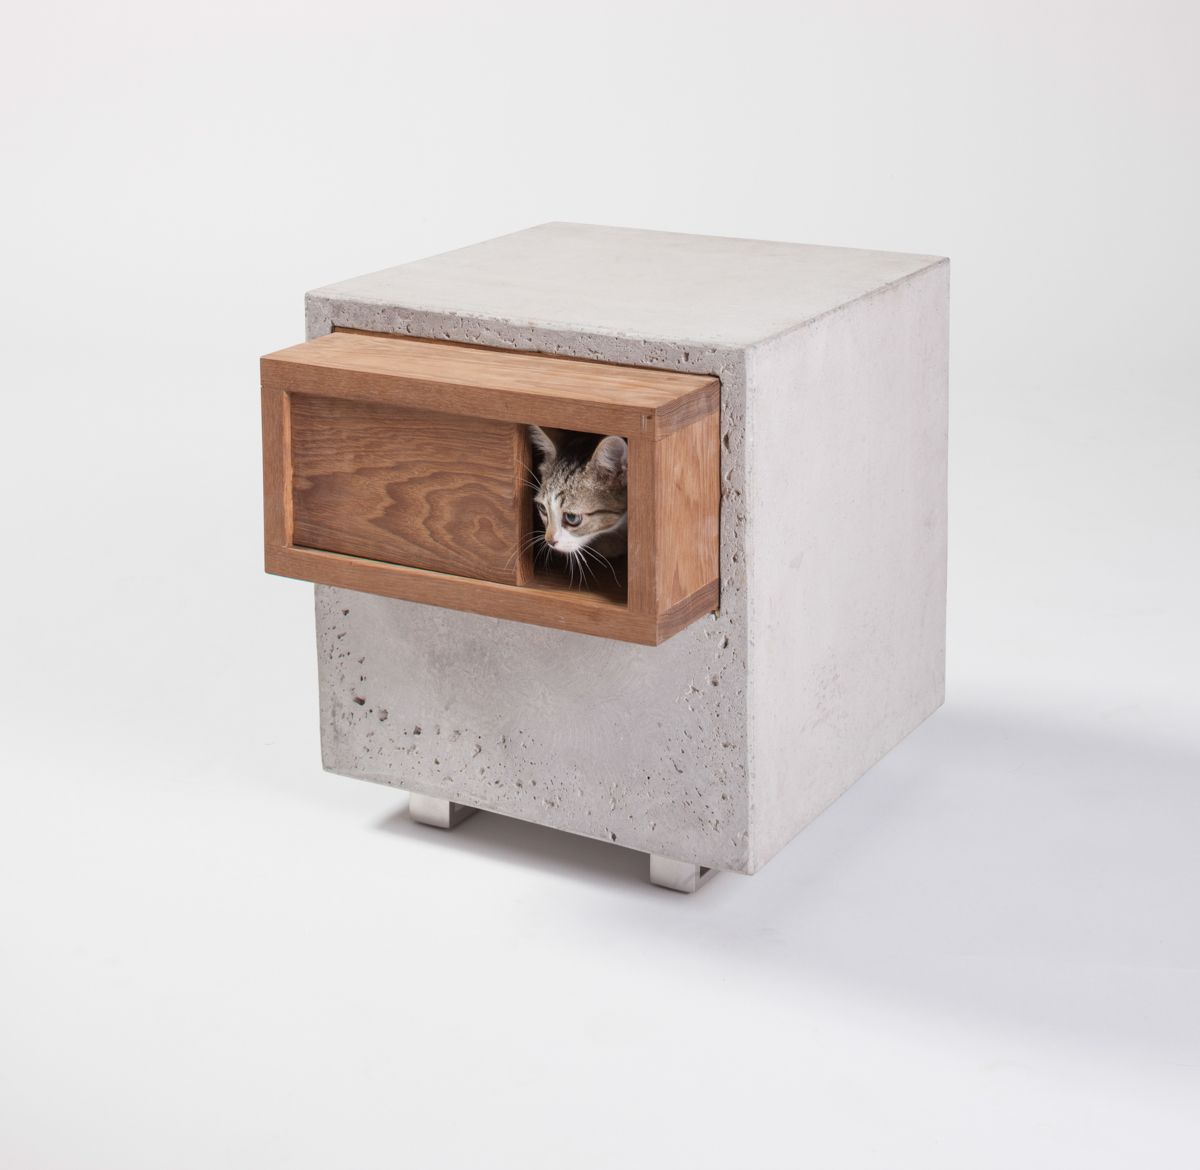 Outdoor Shelters For Animals : Inspired outdoor cat shelters by architects for animals